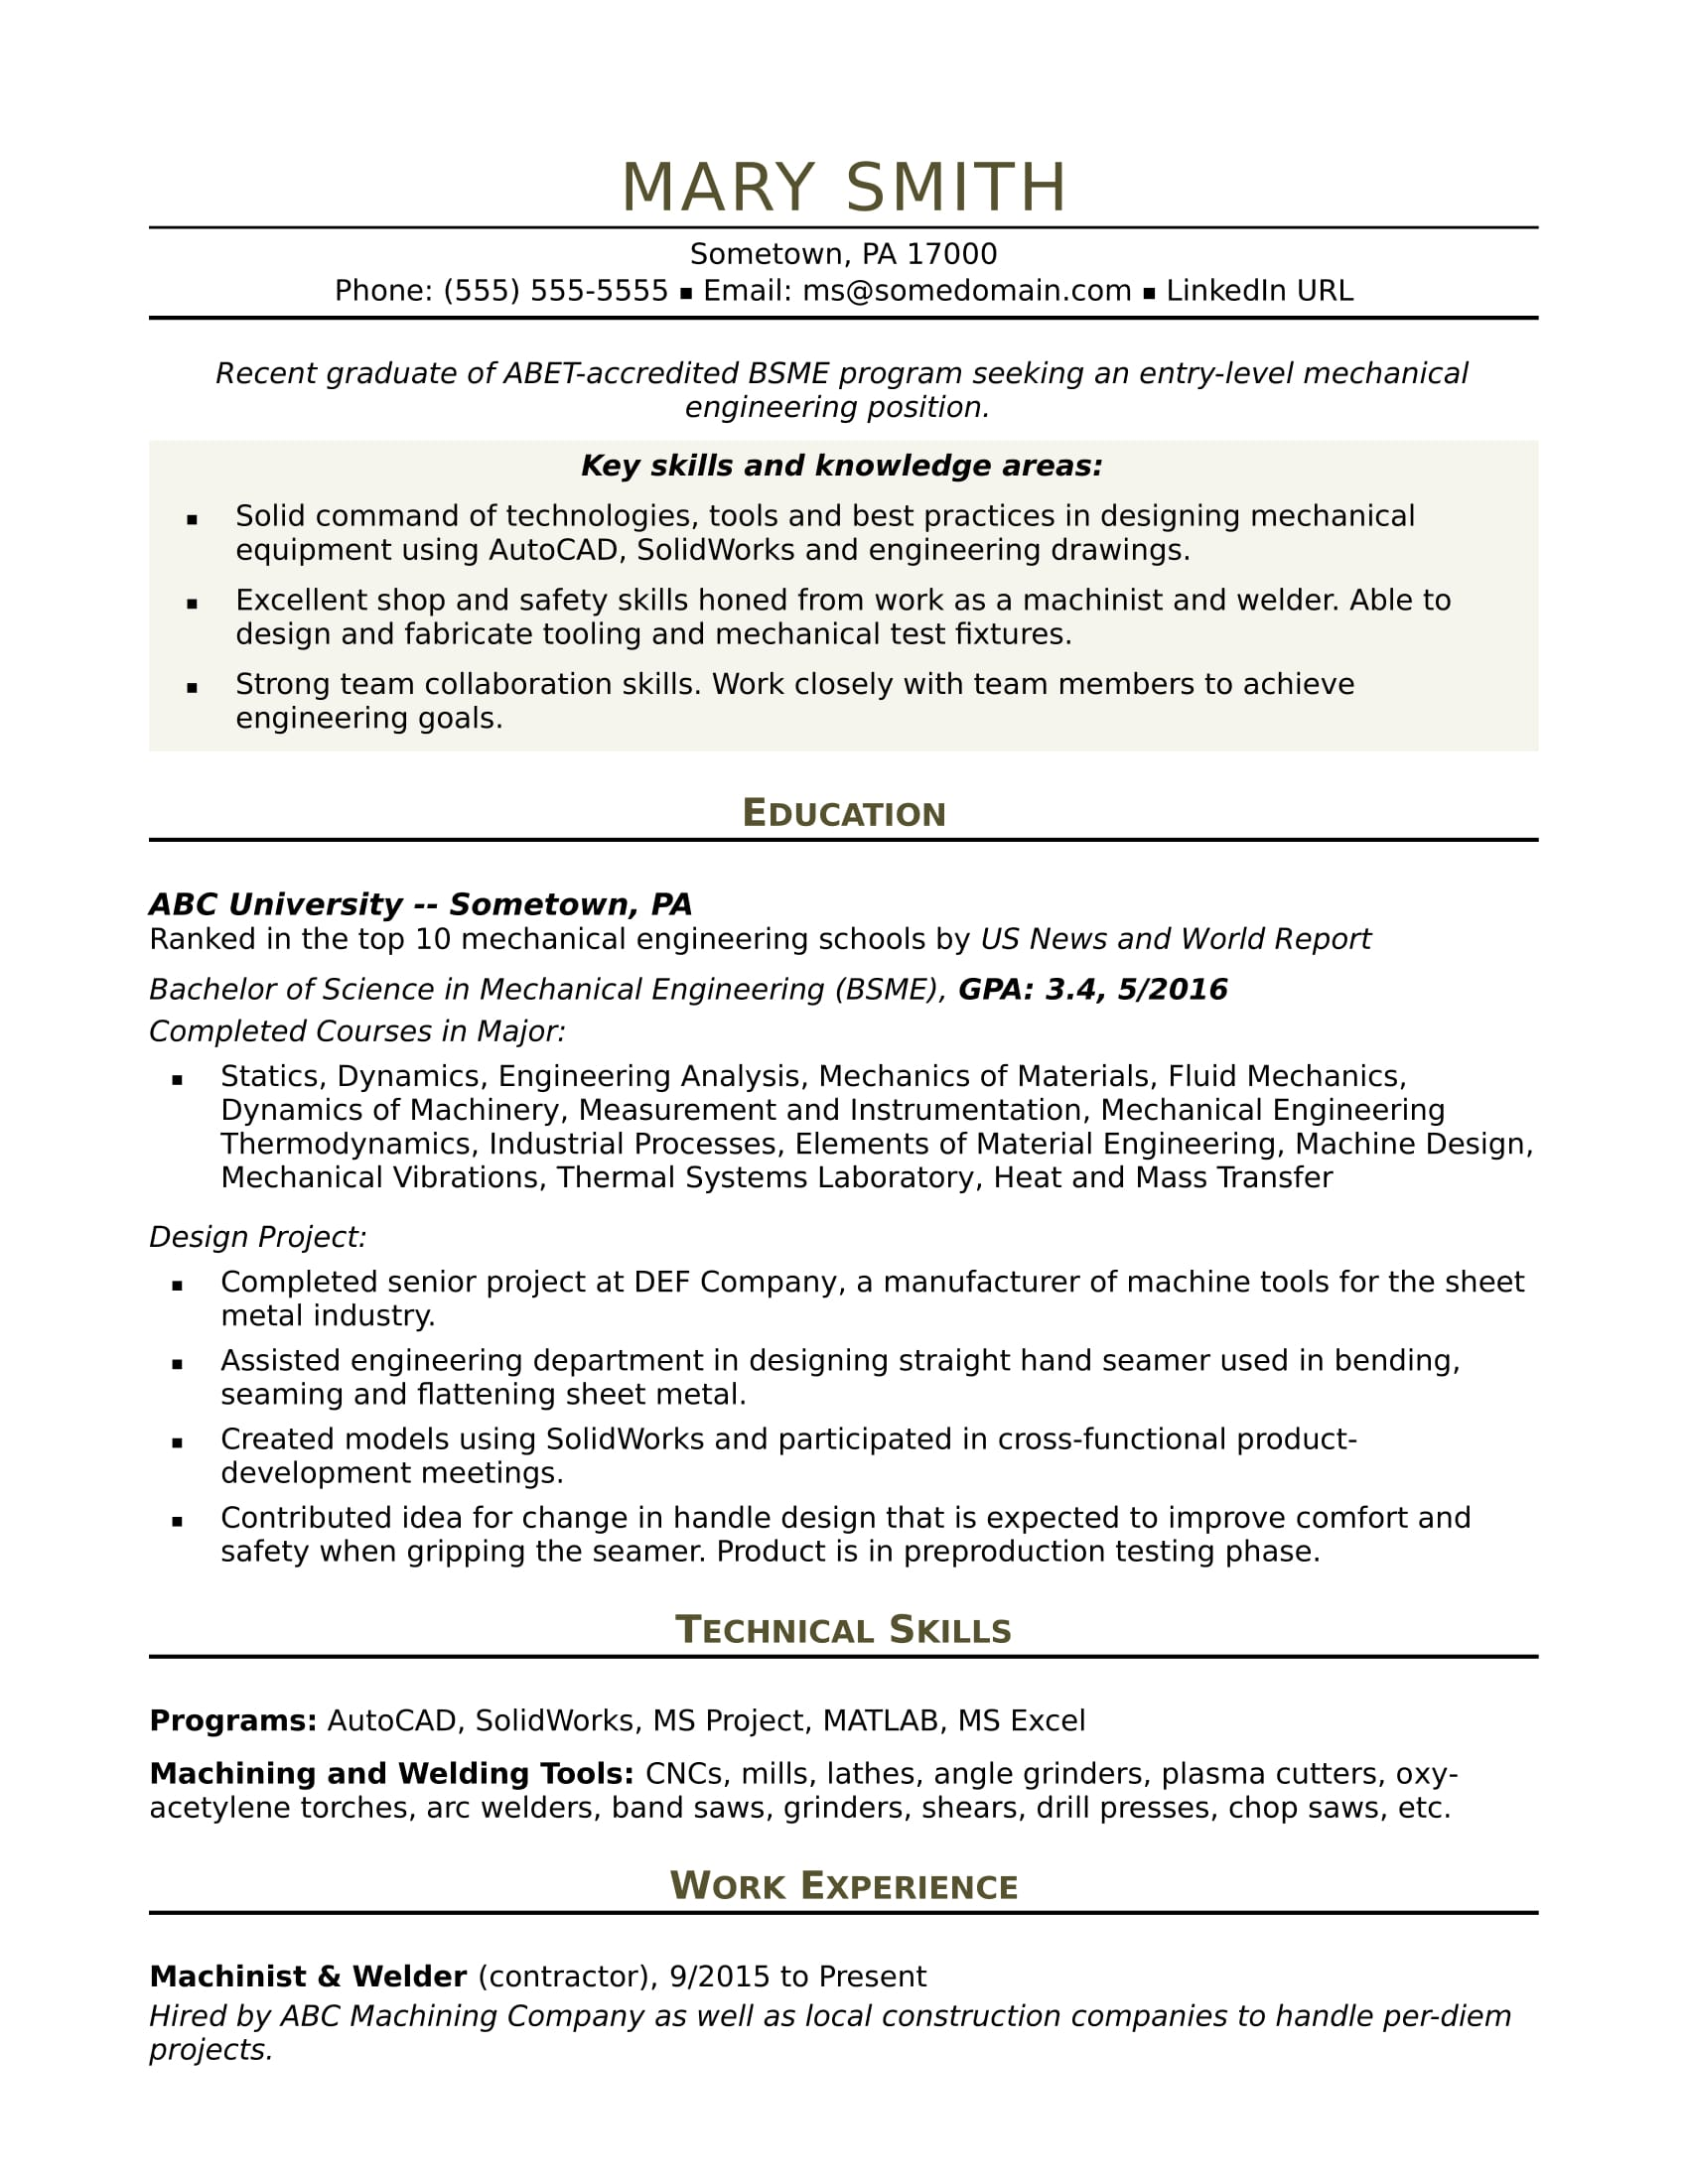 sample resume for an entry level mechanical engineer - Resume Sample For Entry Level